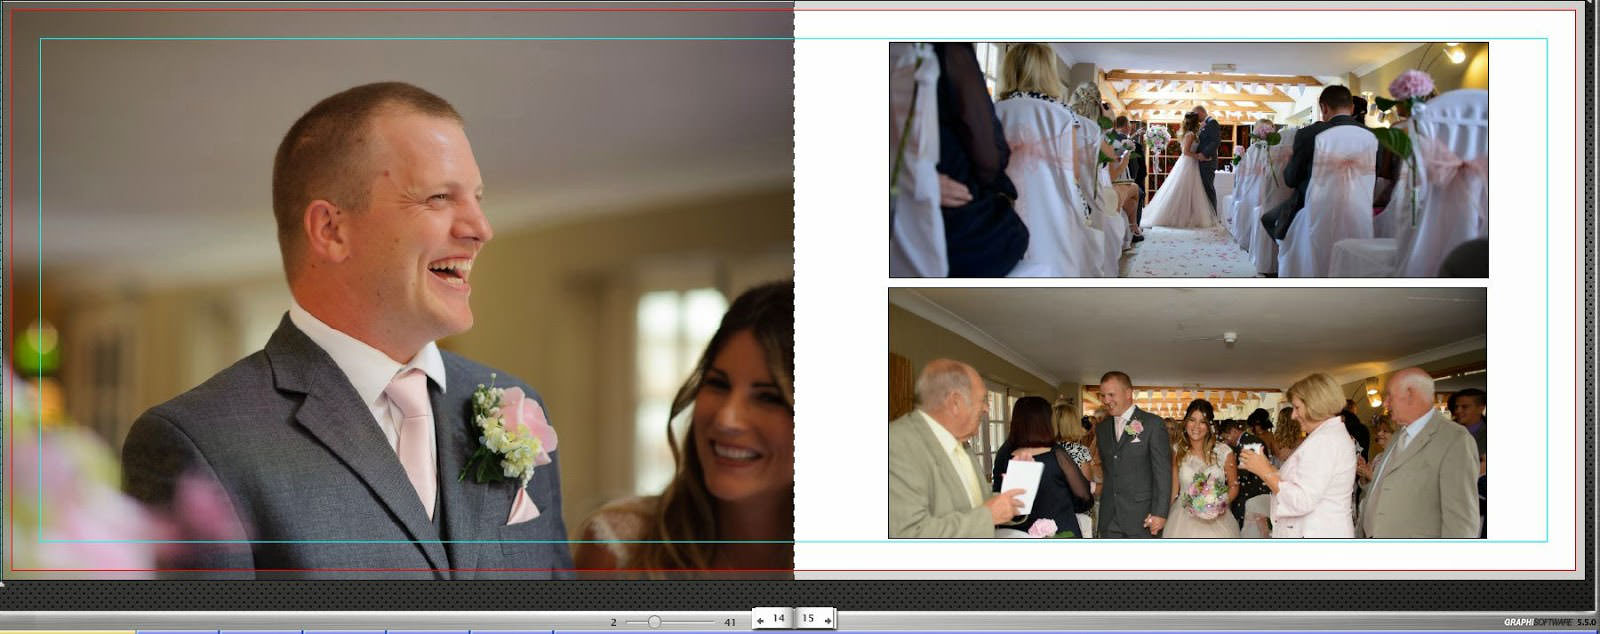 ali-gaudion-chichester-wedding-photographer-graphistudio-wedding-album-design-007